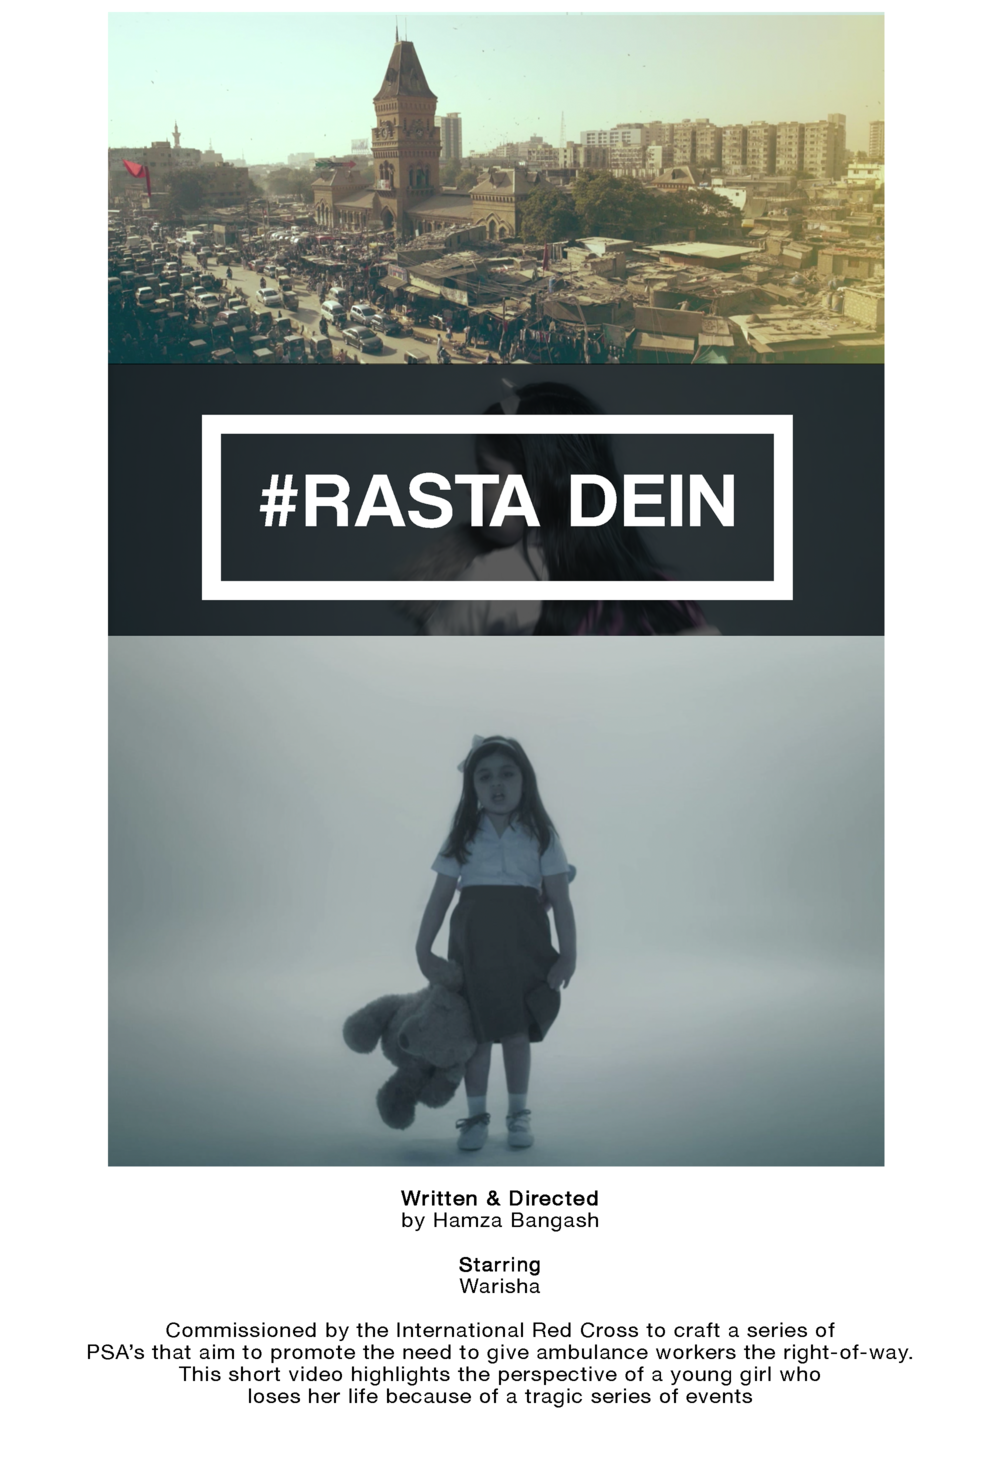 #Rasta Dein: Daughter's Story